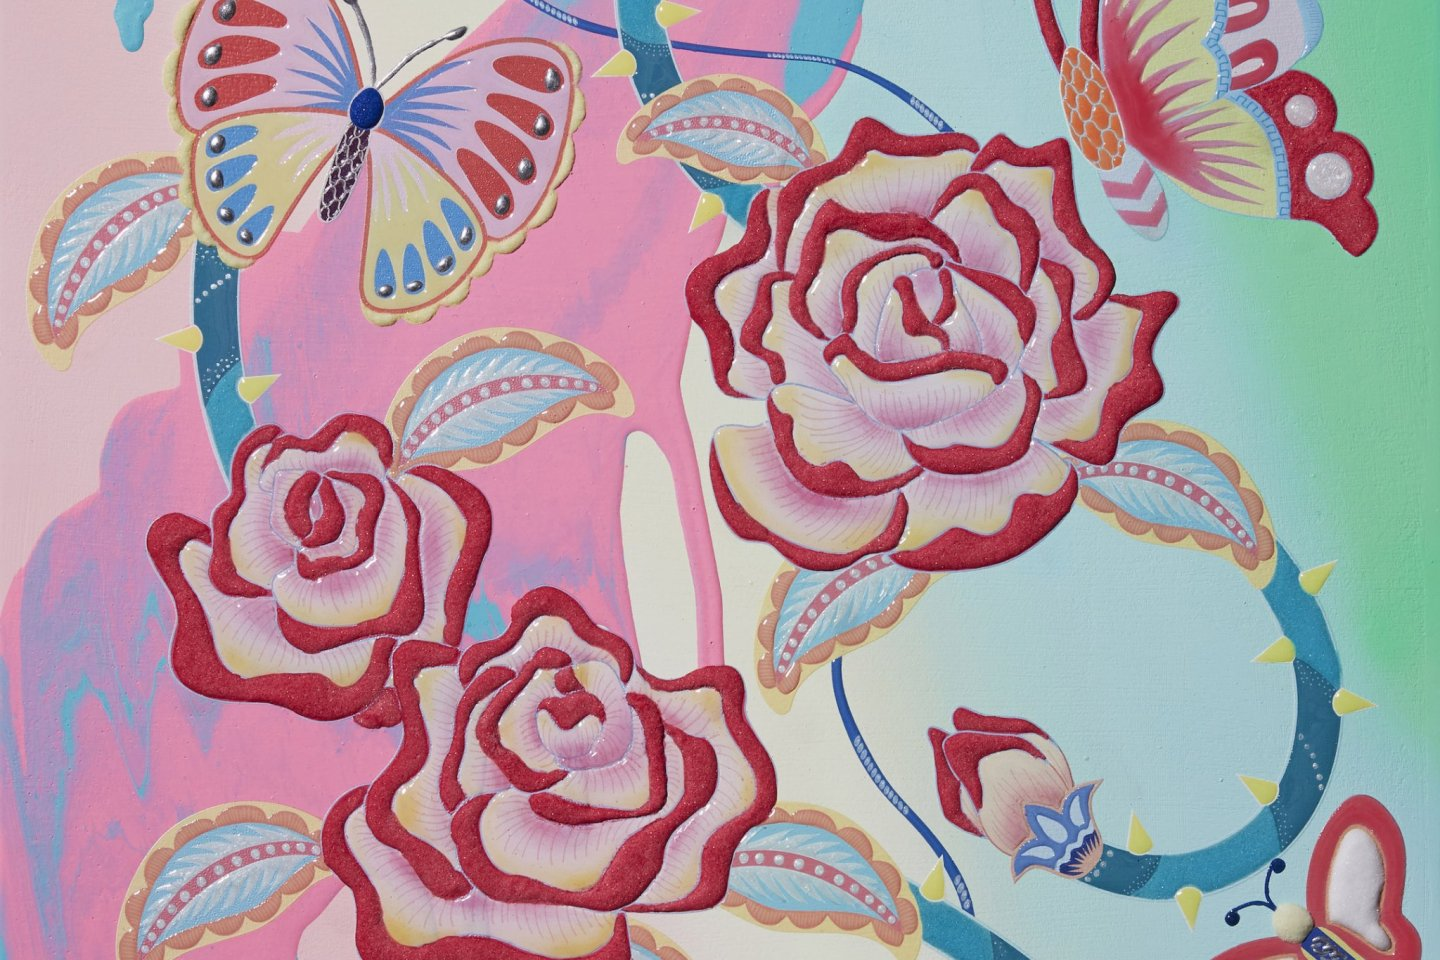 Many of the works on display will feature nature-based motifs, including flowers, birds, and butterflies